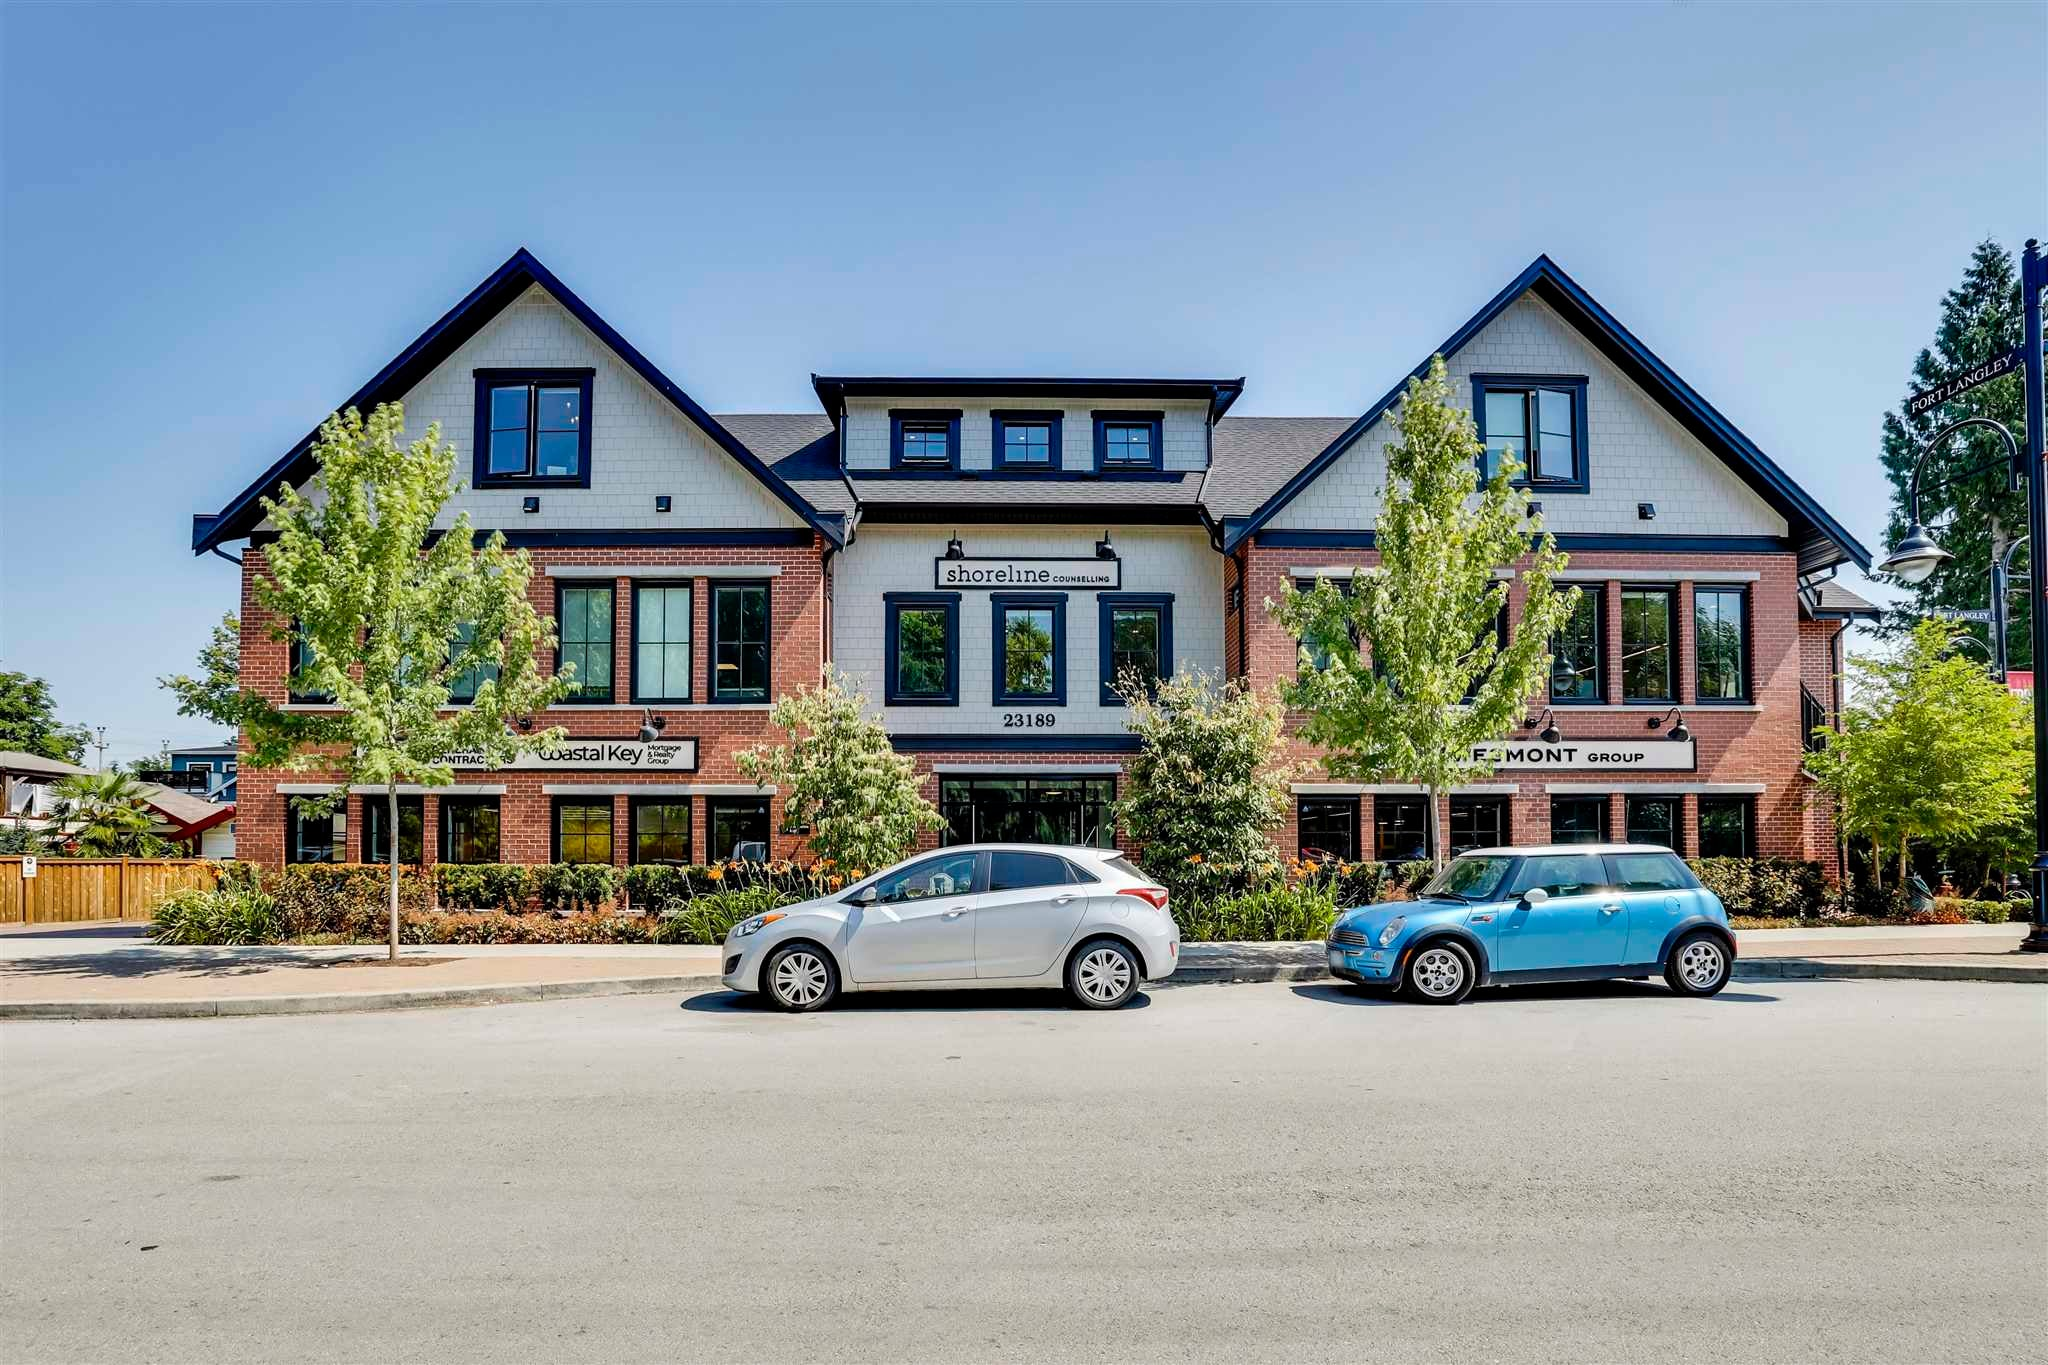 105 23189 FRANCIS AVENUE - Fort Langley Apartment/Condo for sale, 2 Bedrooms (R2602140) - #1